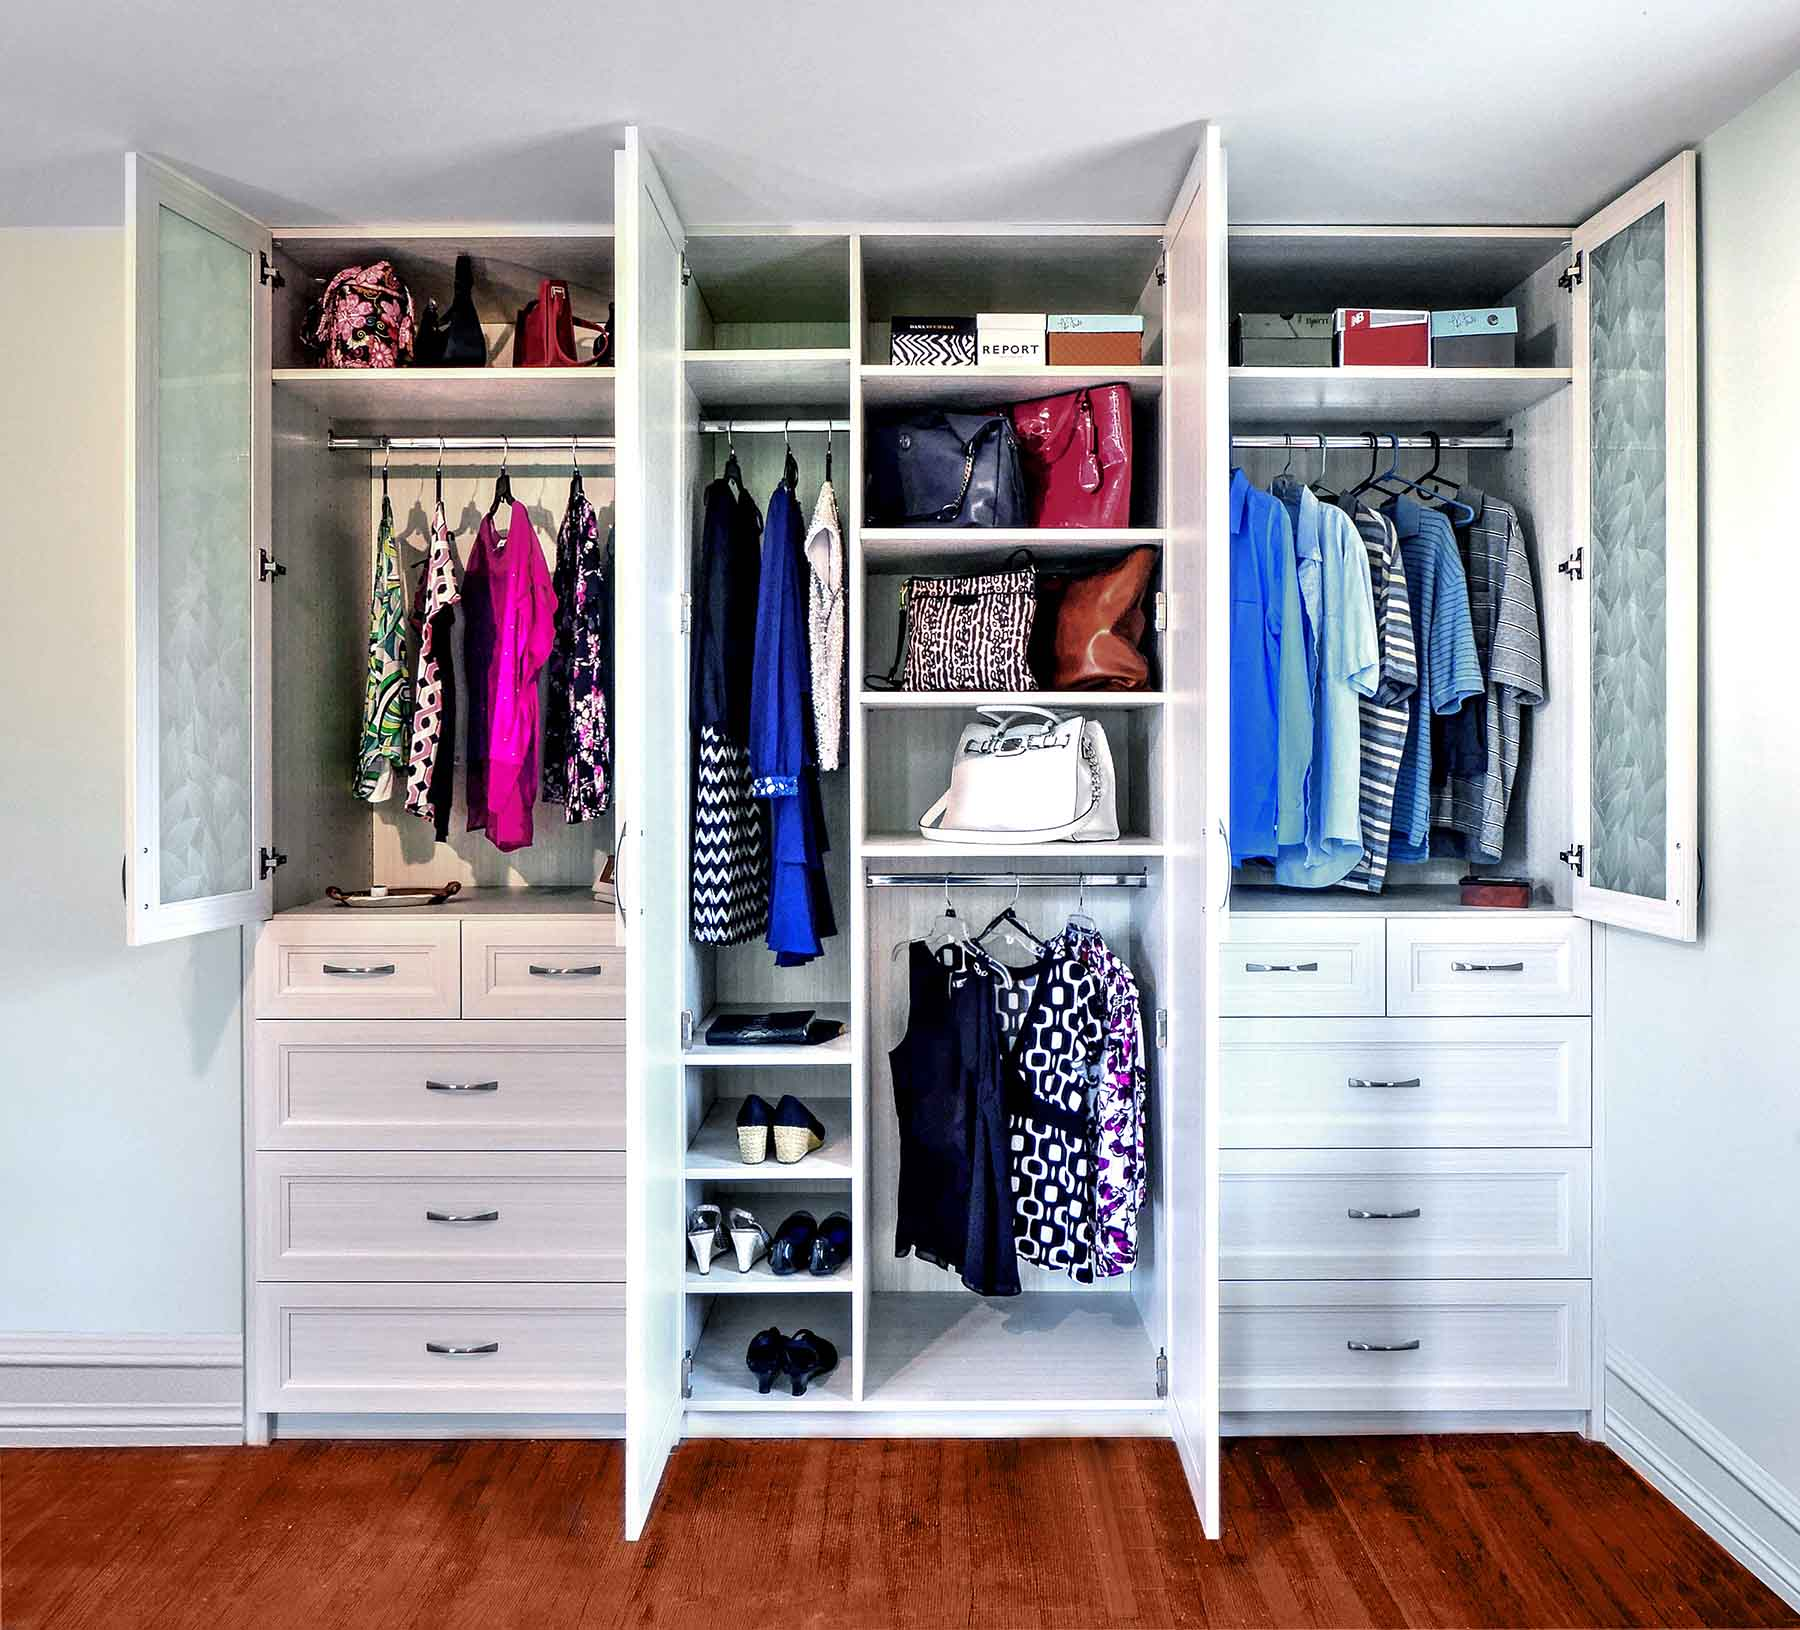 Need More Storage Space? 4 Reasons a Custom Wardrobe is the Way to Go